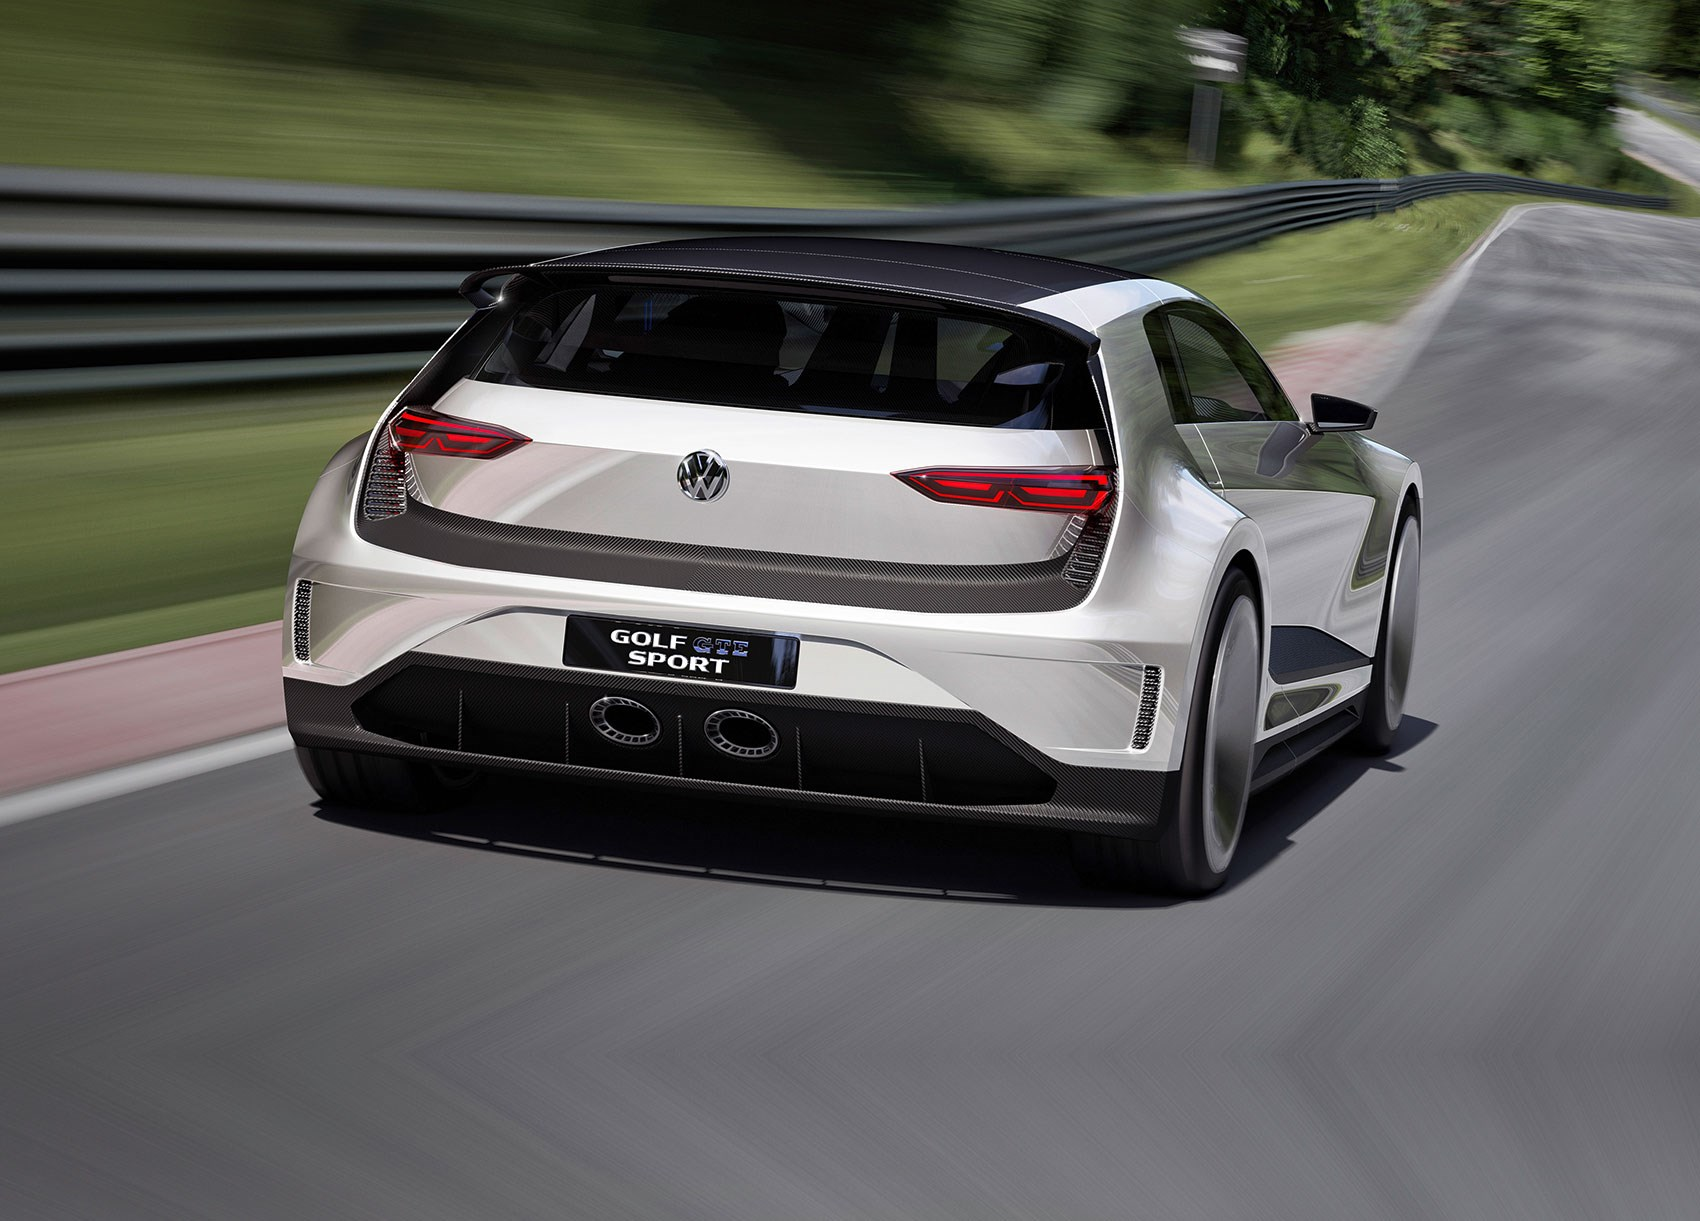 vw golf gte sport the outrageous carbon bodied 400bhp hybrid gti car magazine. Black Bedroom Furniture Sets. Home Design Ideas